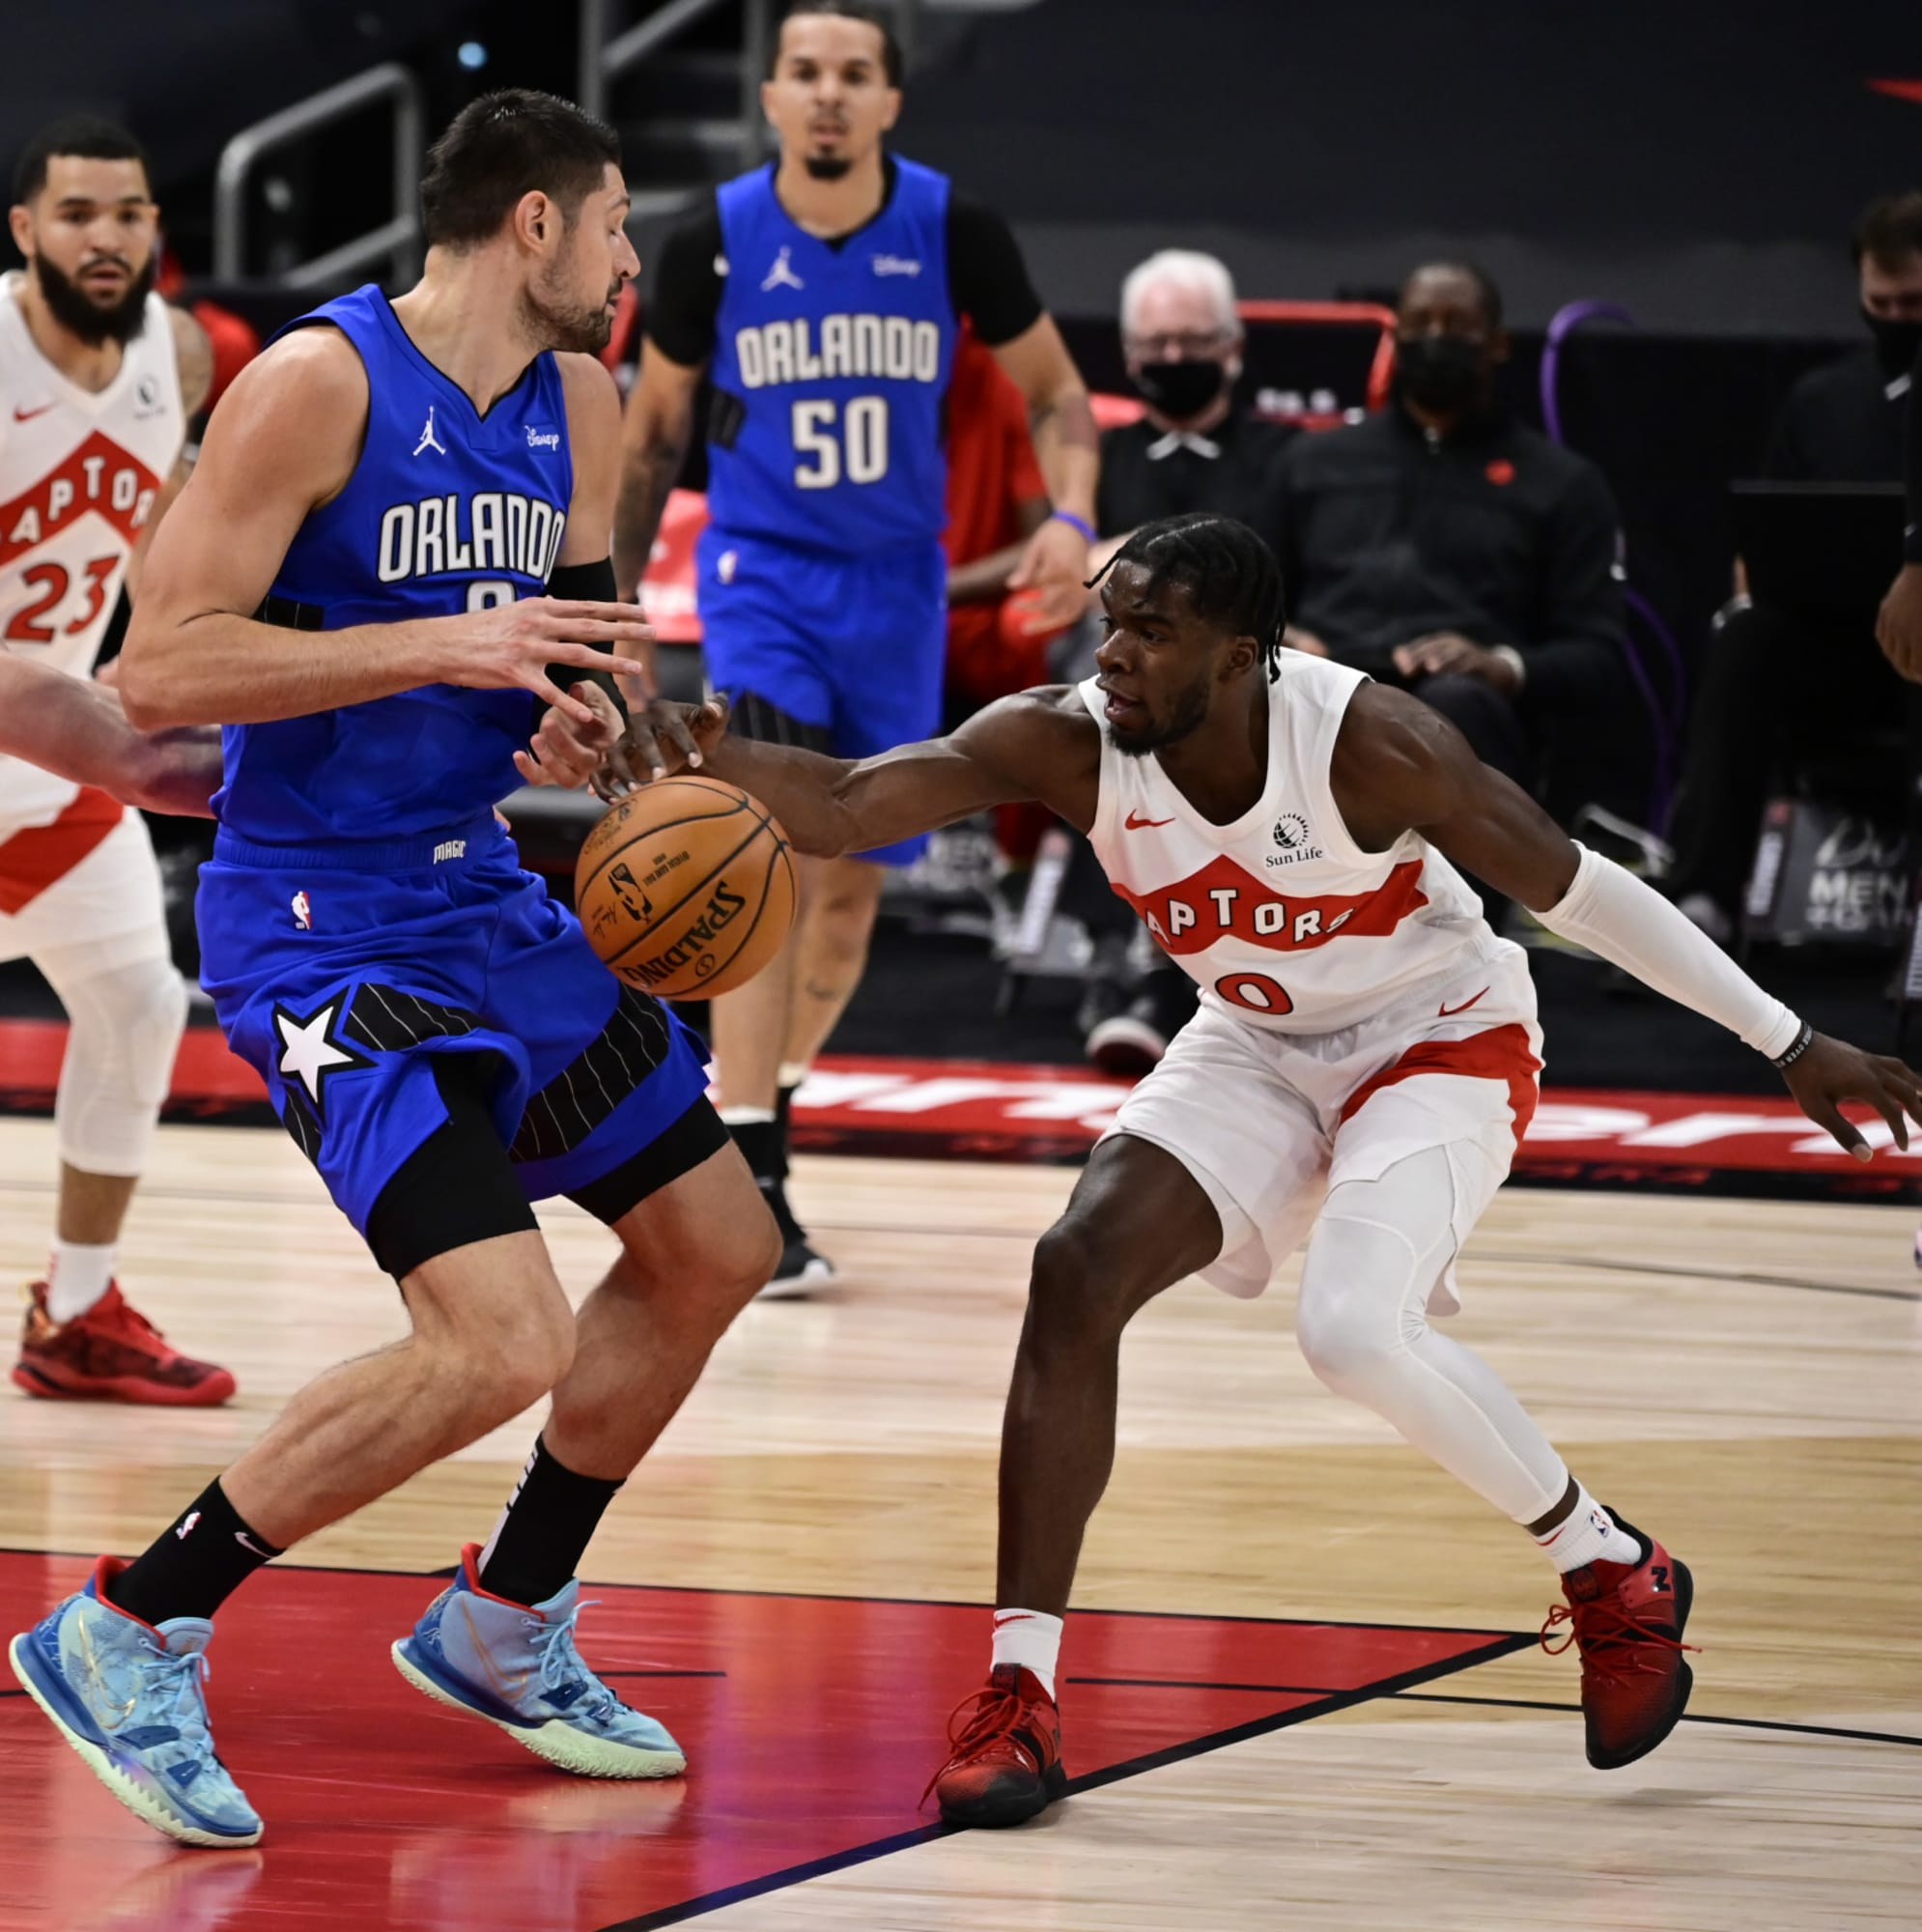 Key takeaways from the Toronto Raptors win against the Magic